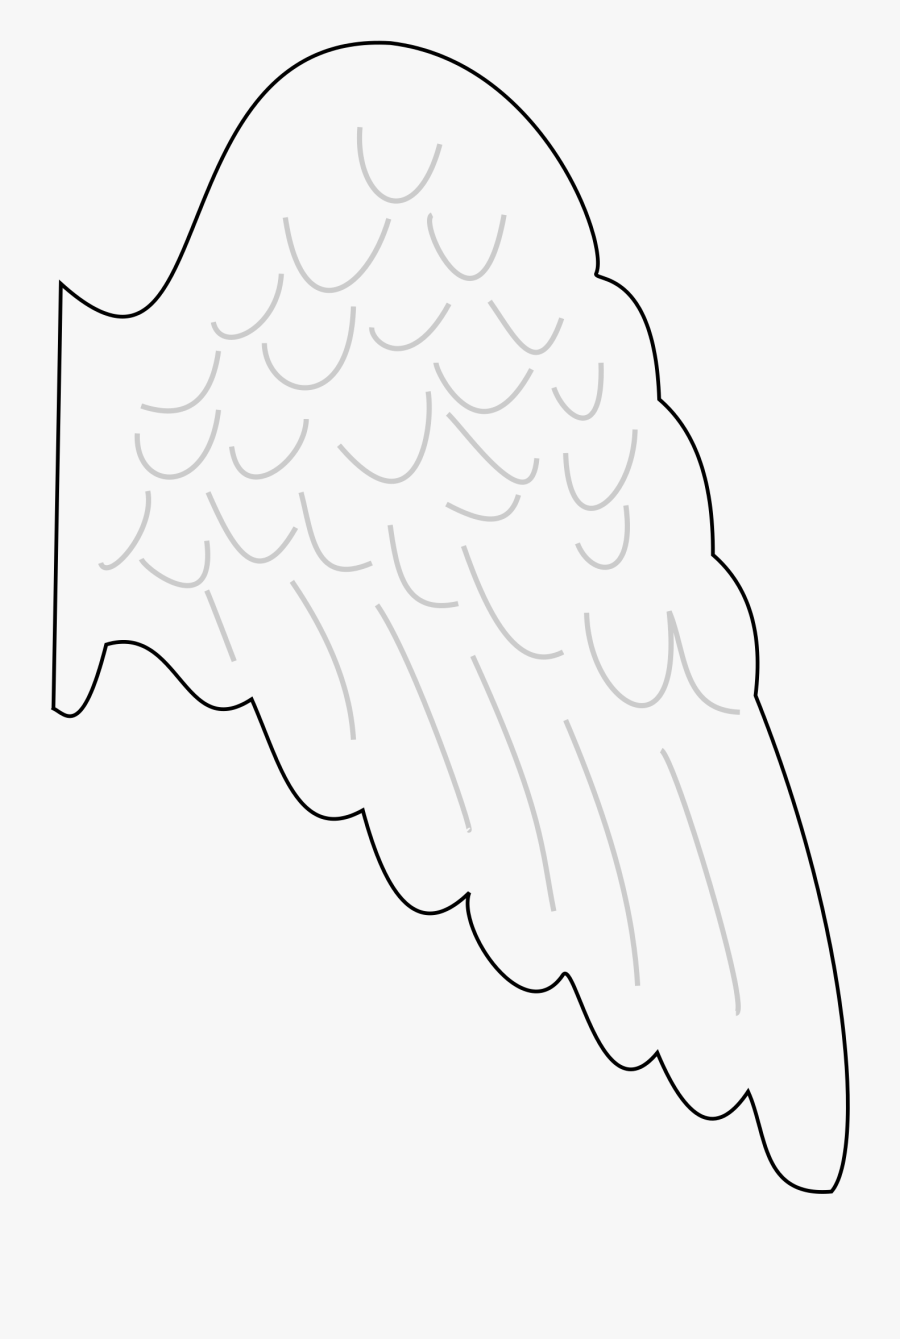 Angel Wings Clipart Clipartix - Angel Wing Template Printable Free, Transparent Clipart